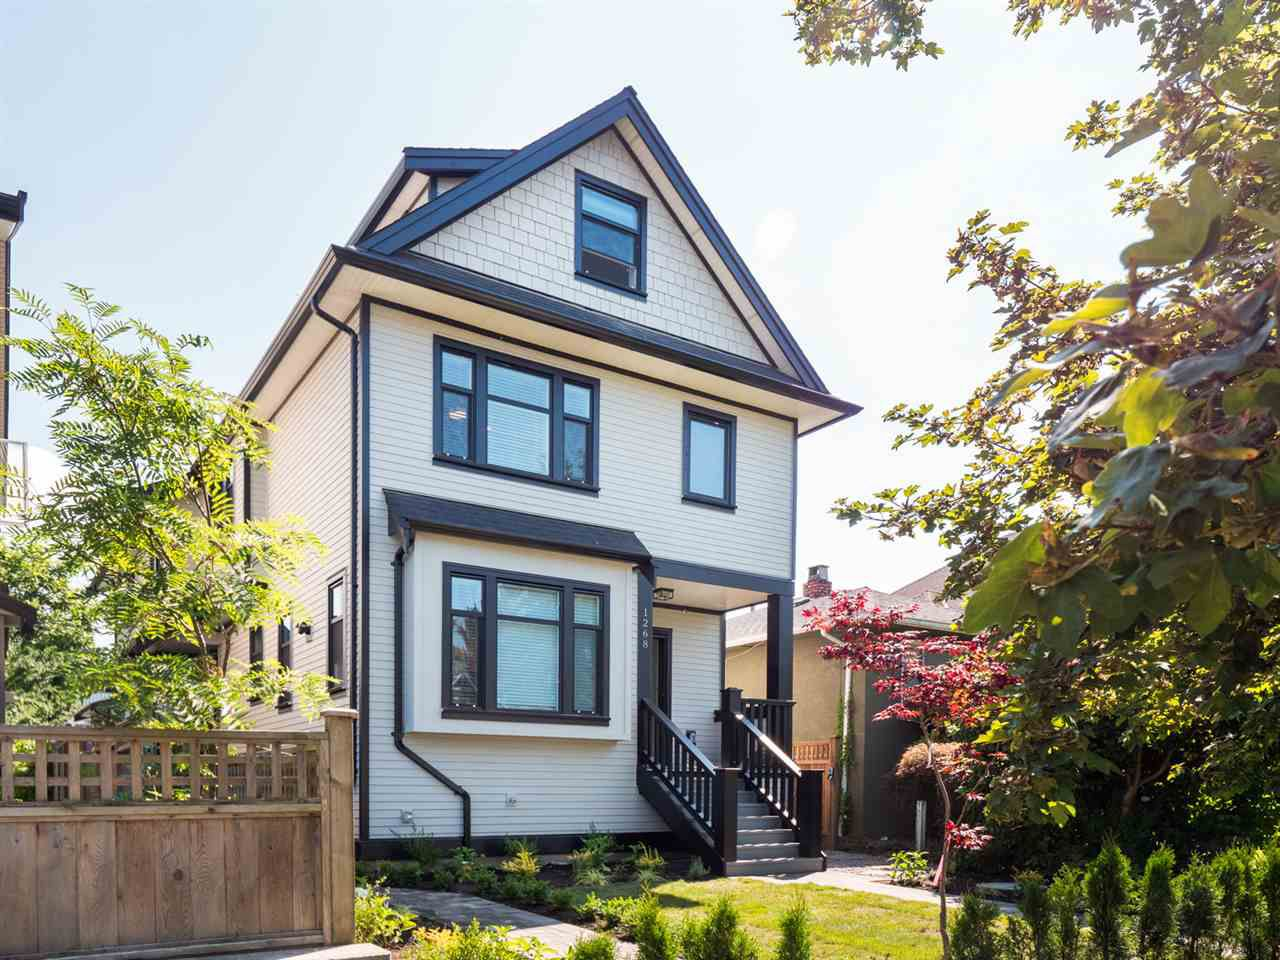 Main Photo: 1270 E 16TH Avenue in Vancouver: Knight House 1/2 Duplex for sale (Vancouver East)  : MLS®# R2387143